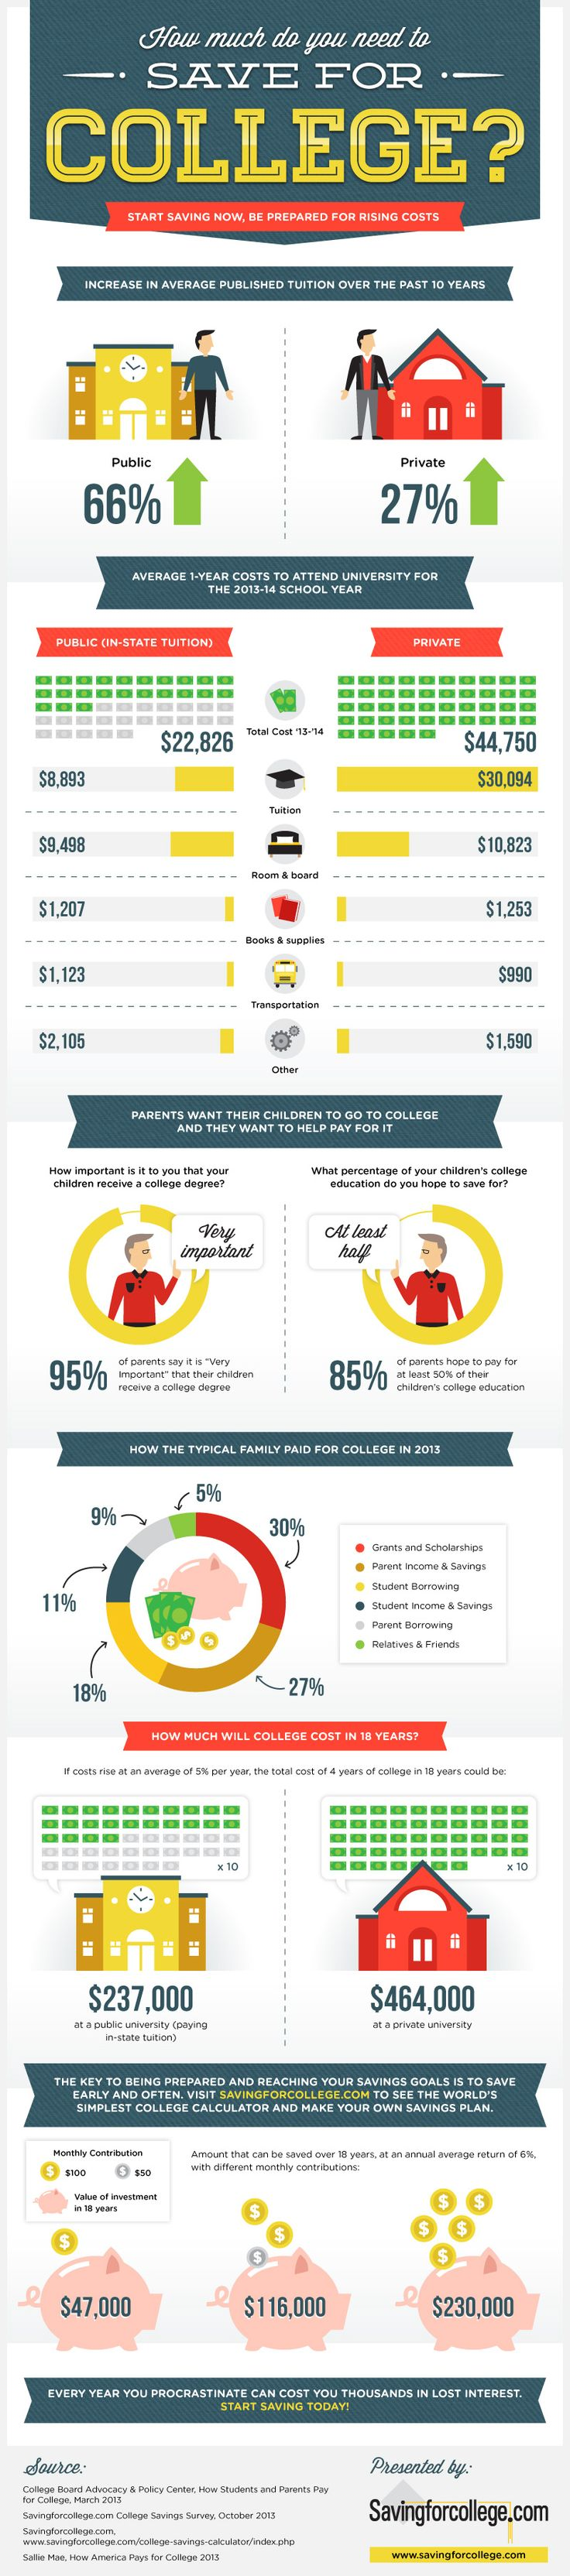 #Infographic: How much do you need to save for college?